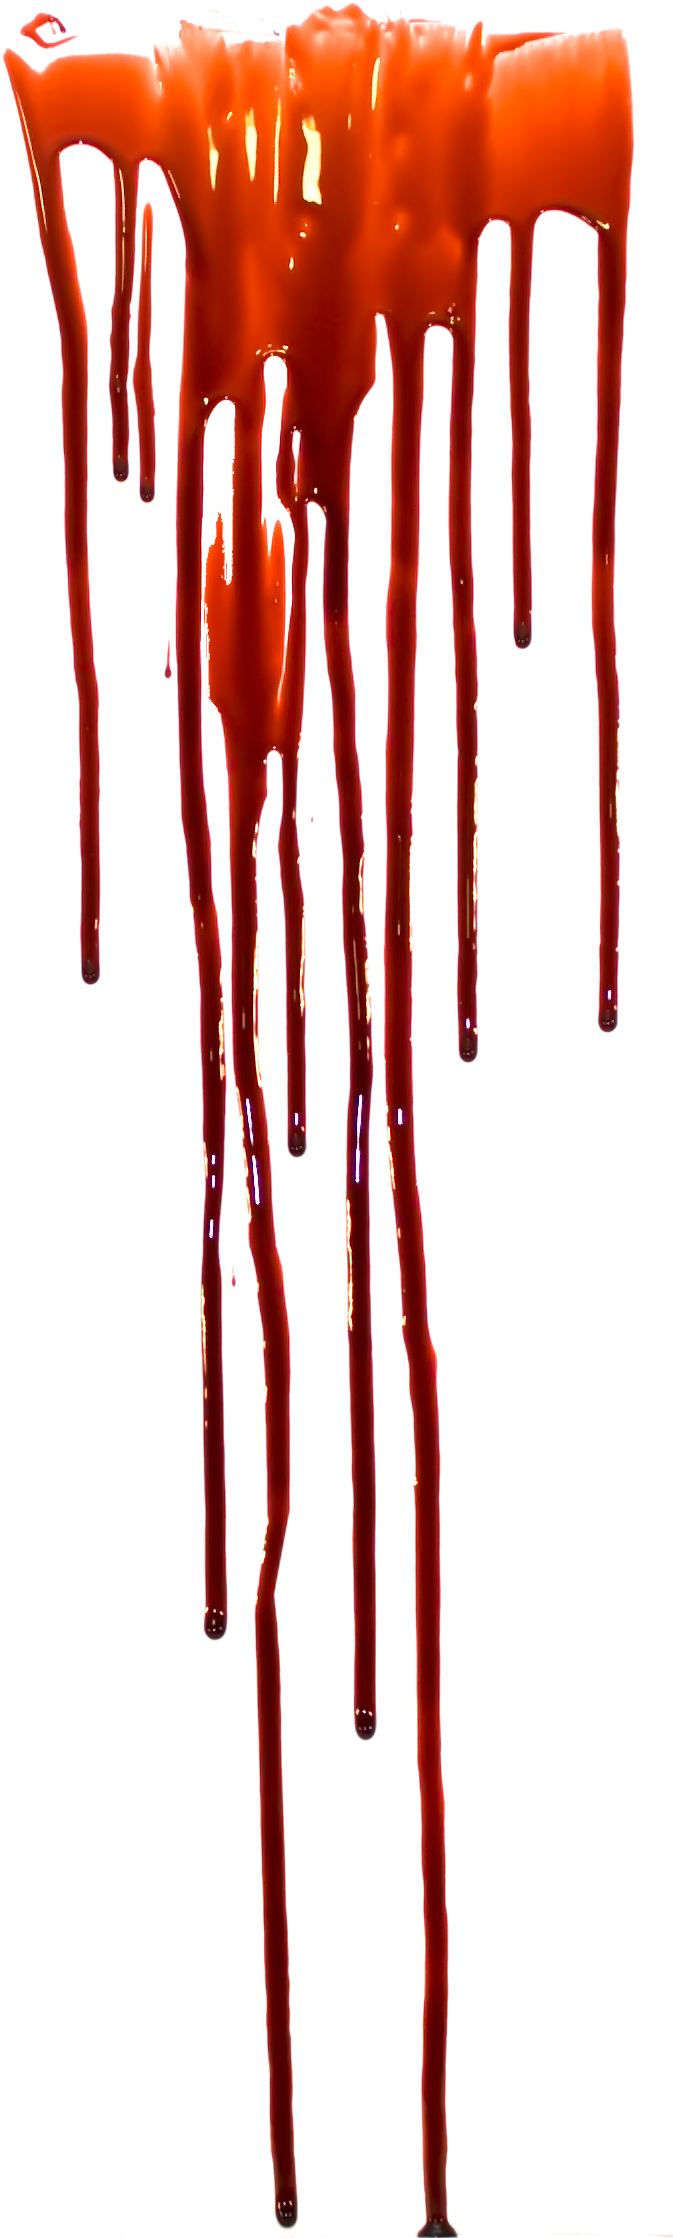 Drip blood png. Splatter fifty eight isolated